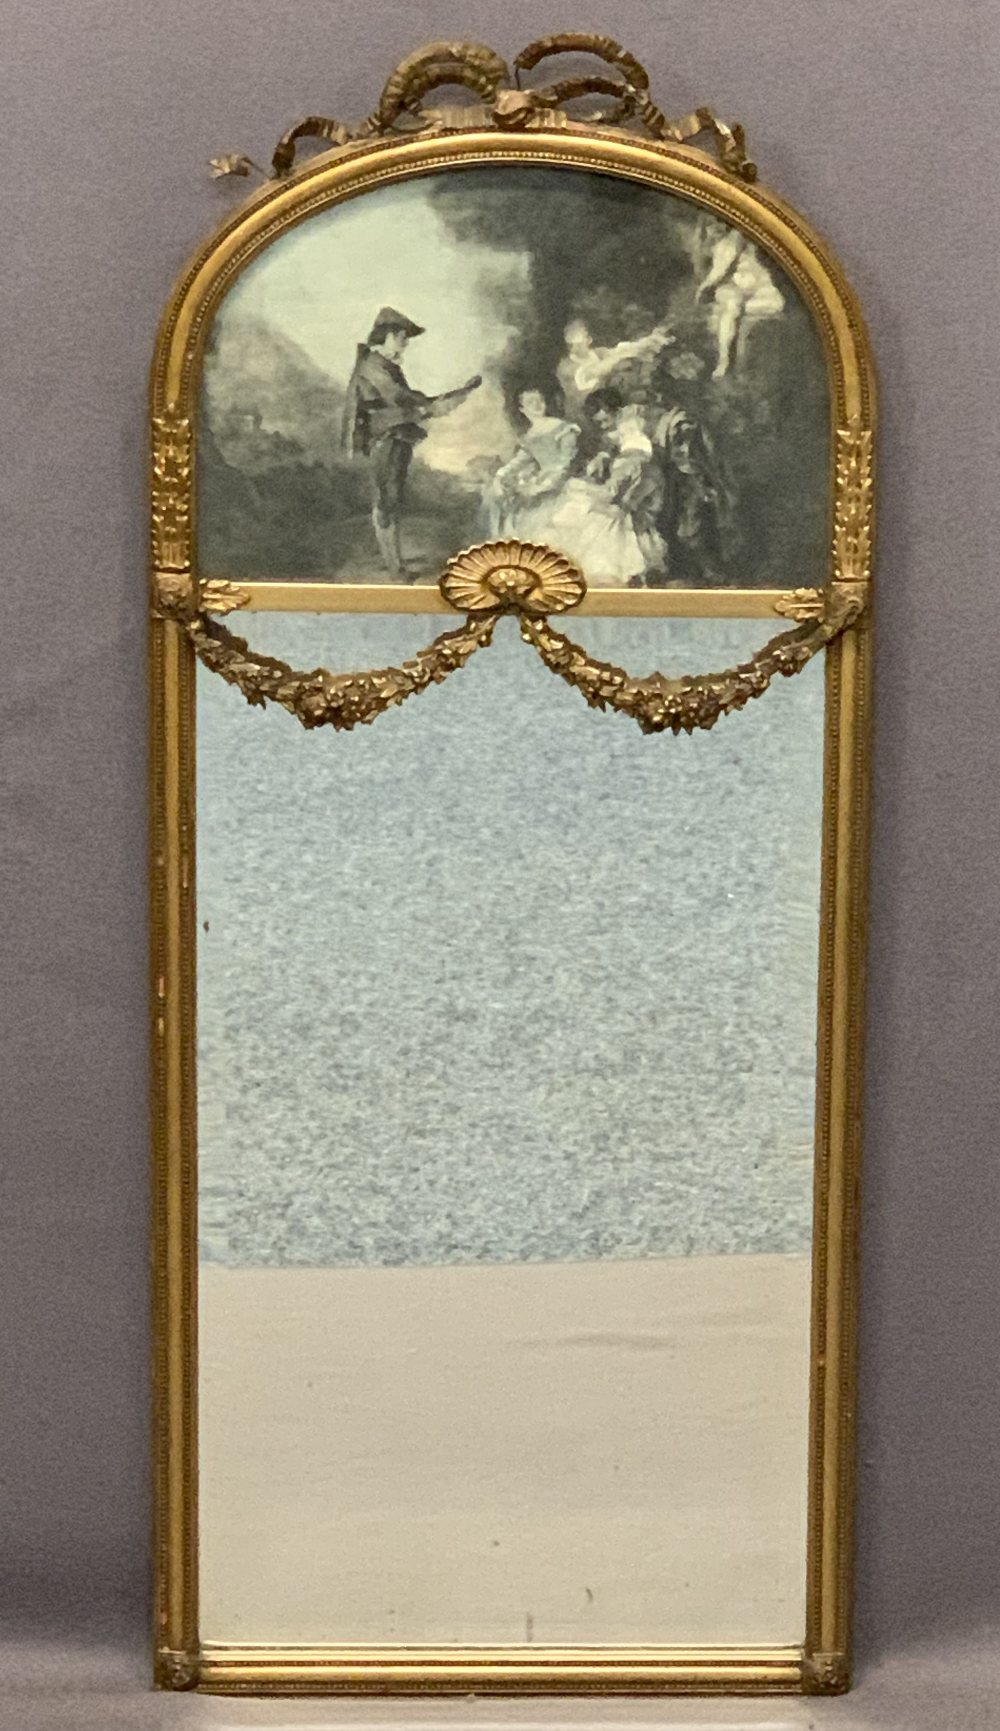 VINTAGE PIER TYPE MIRROR - the curved top with inset classical scene print, applied crest ribbon and